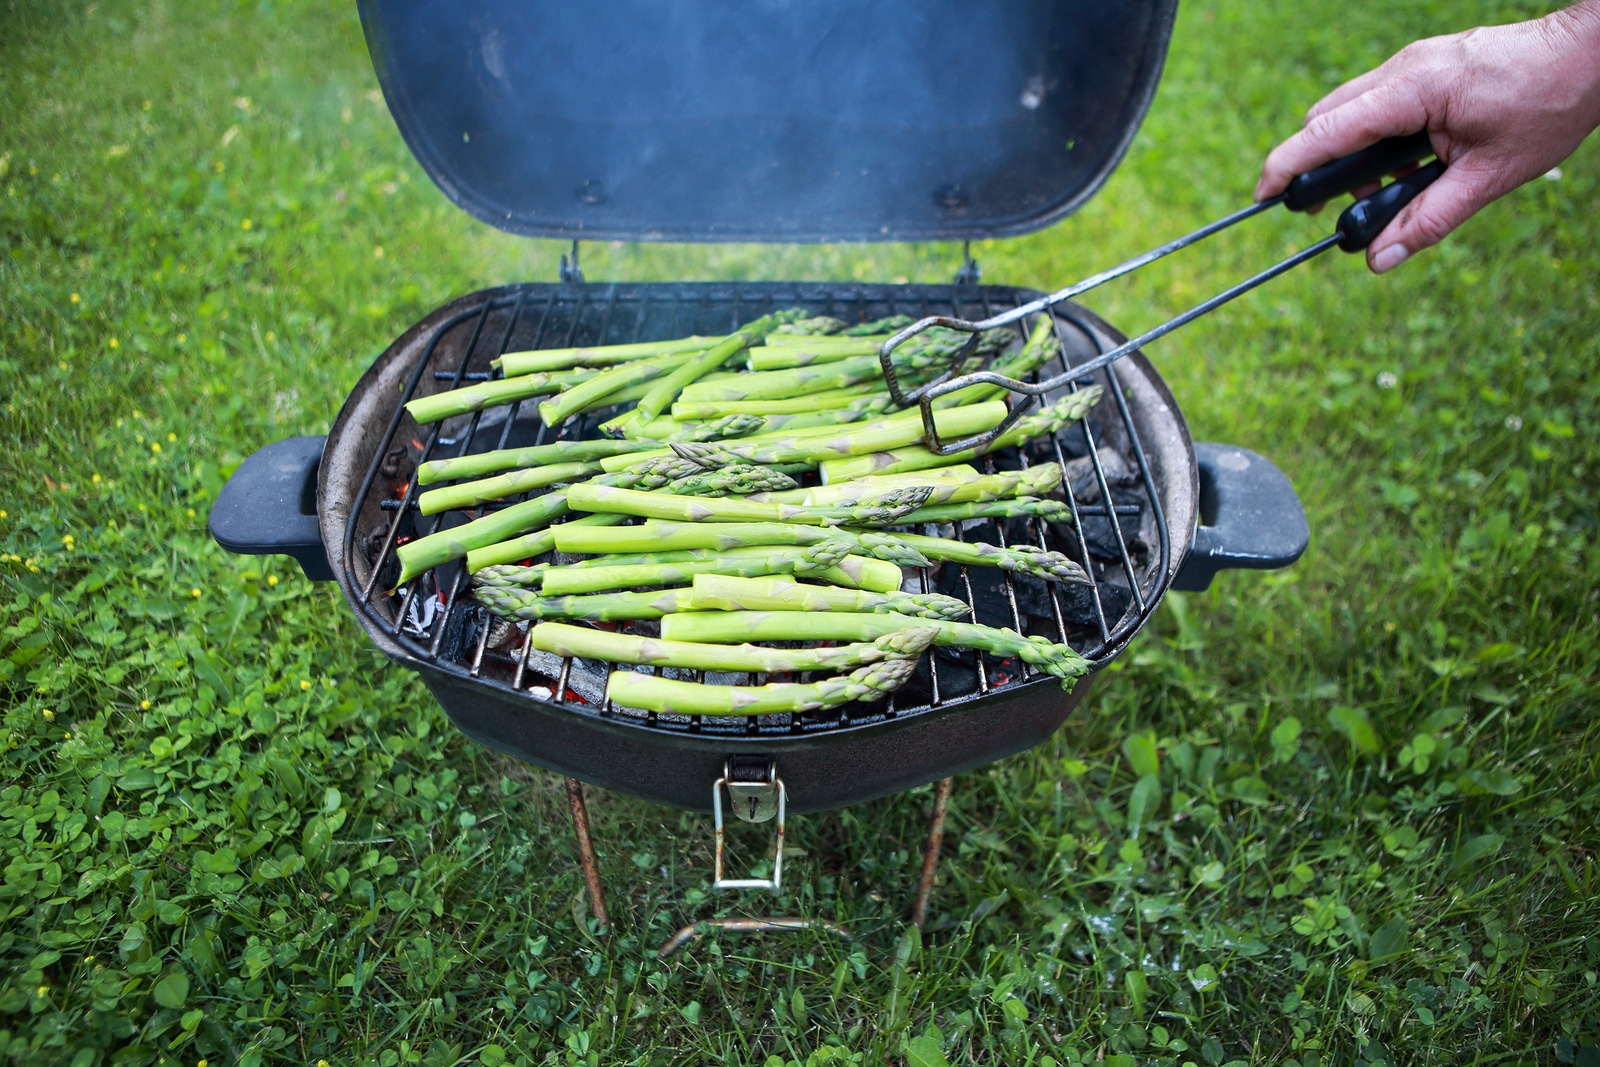 Best Portable Gas Grill Under $100